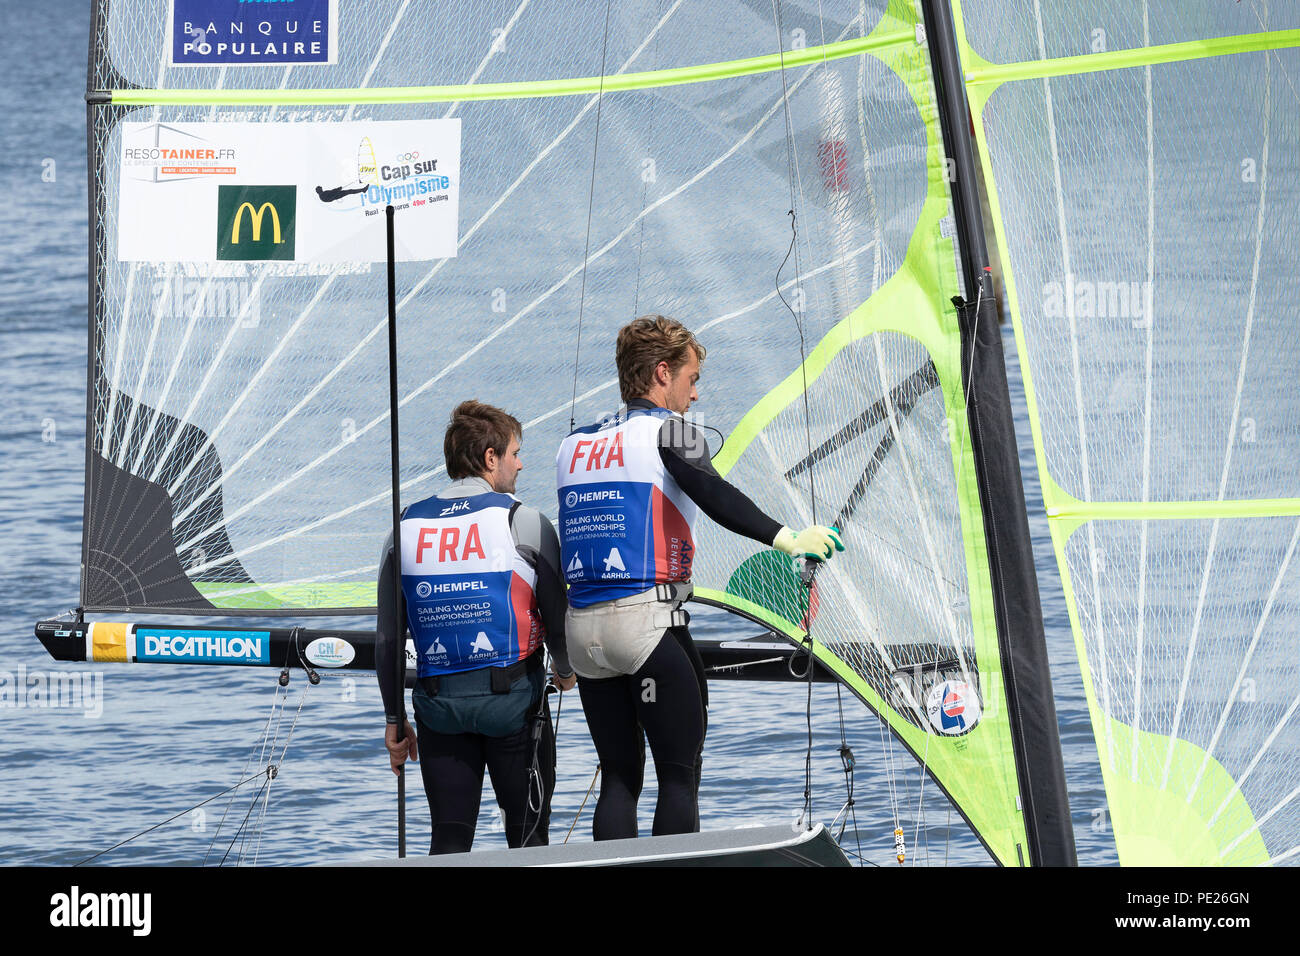 Aarhus, Denmark is hosting the 2018 Hempel Sailing World Championships from 30 July to 12 August 2018. More than 1,400 sailors from 85 nations are racing across ten Olympic sailing disciplines as well as Men's and Women's Kiteboarding. - Stock Image